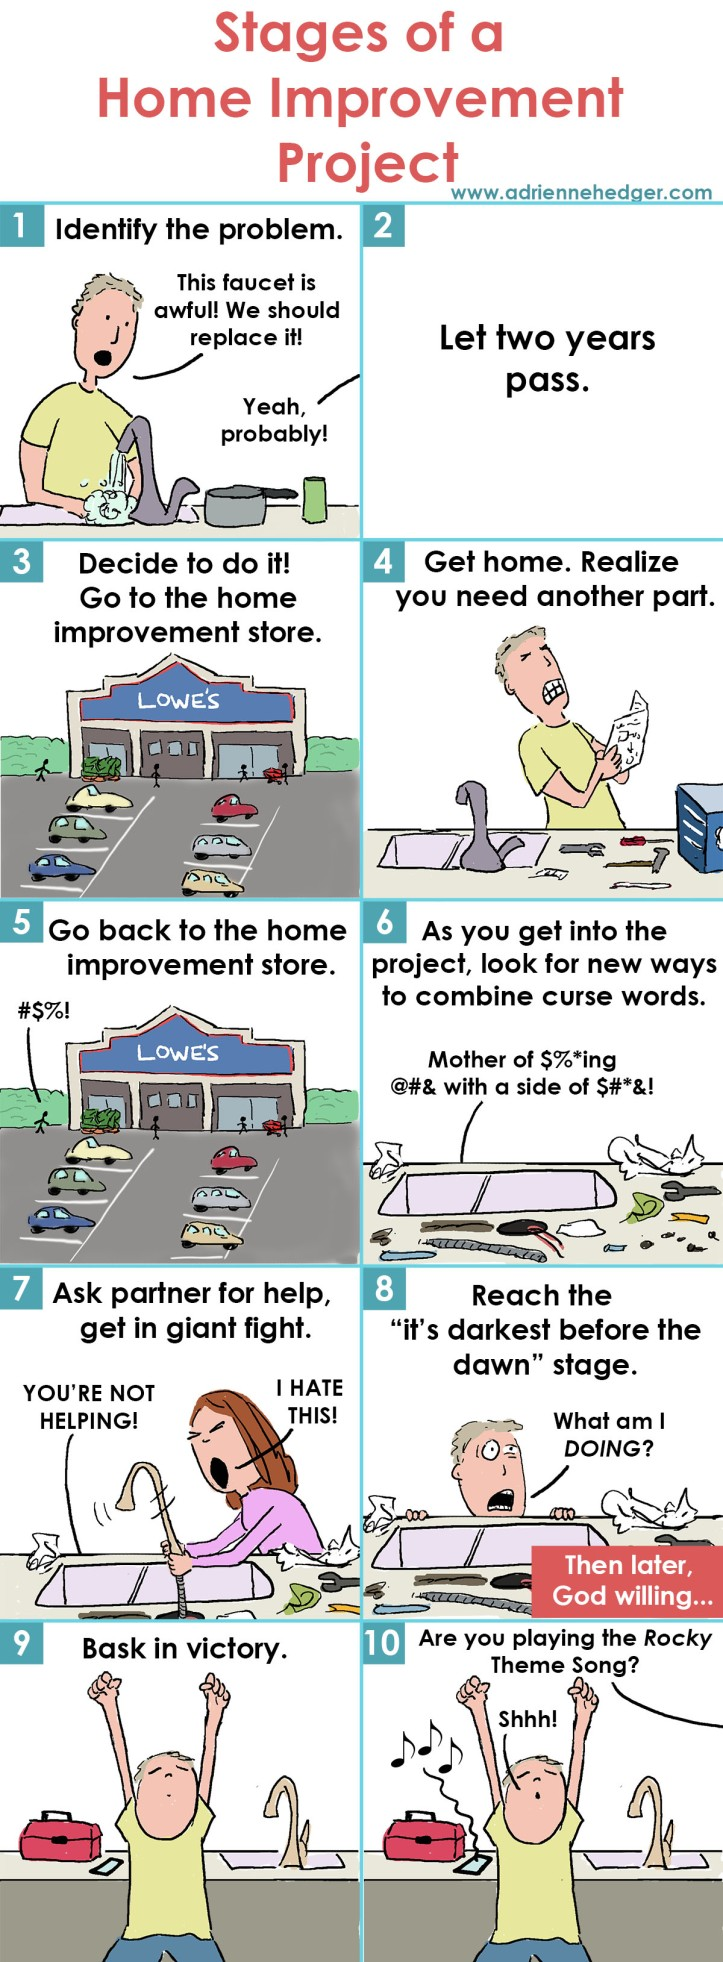 Stages of Home Improvement 1200